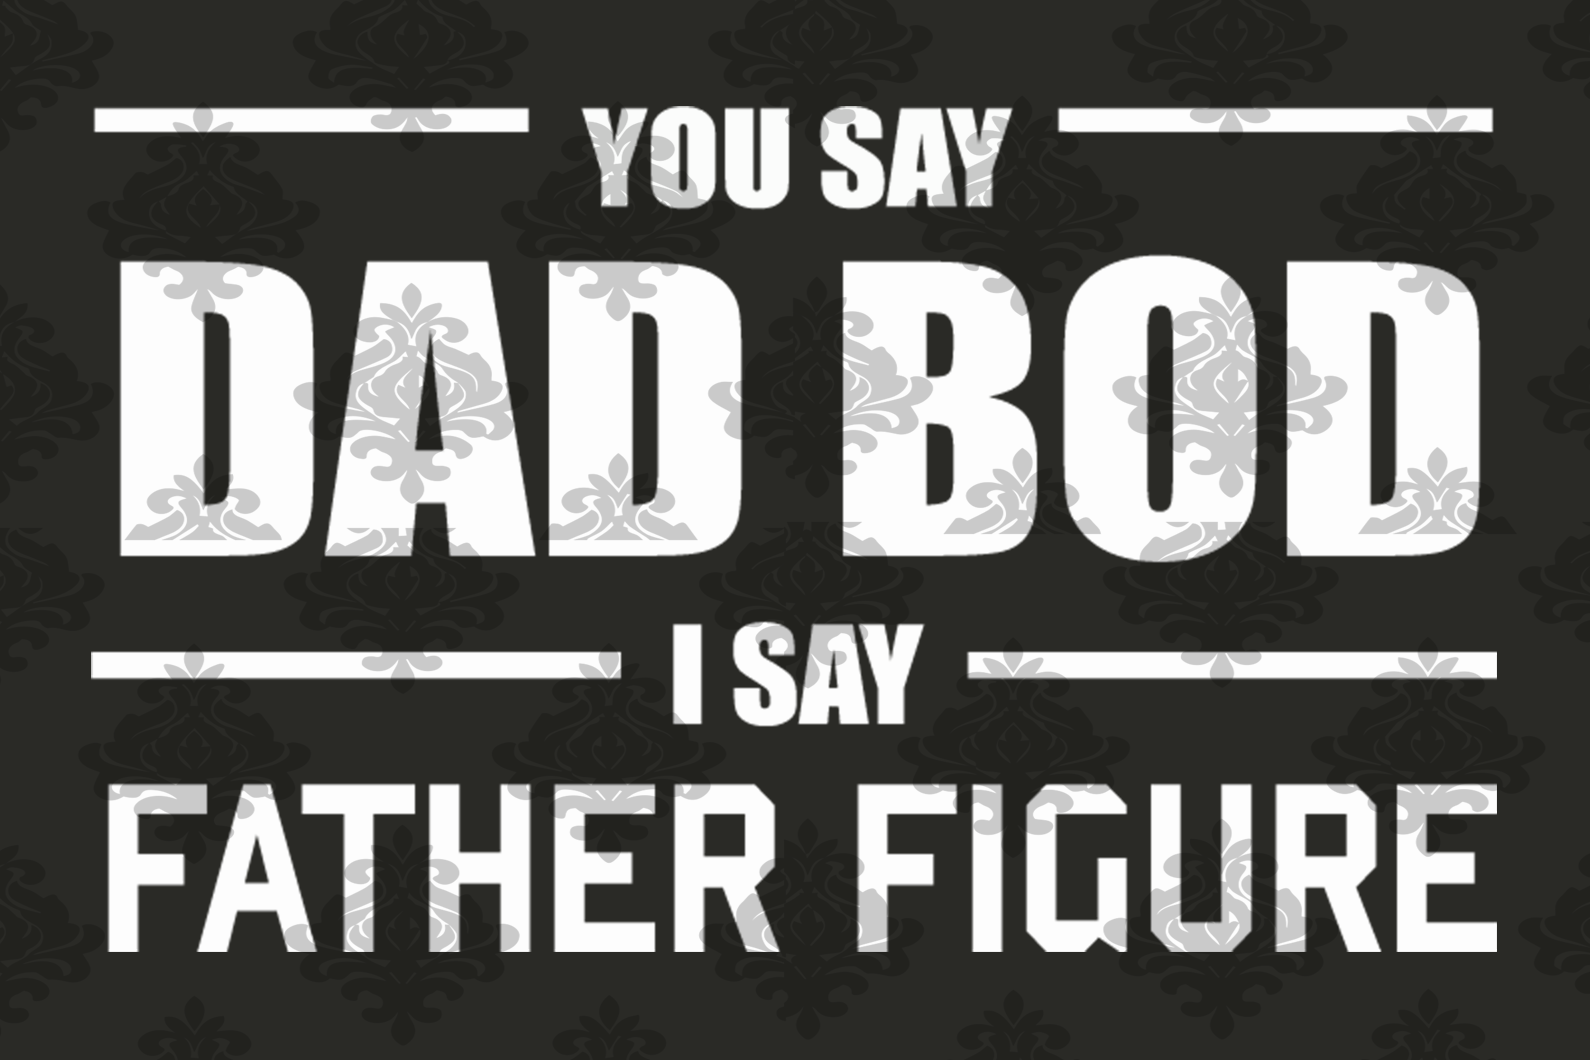 You say dad bod I say father figure,father figure,fathers day svg, fathers day gift,happy fathers day,love father,father gift,fathers day shirt, gift for father,happy fathers day gift,figure svg